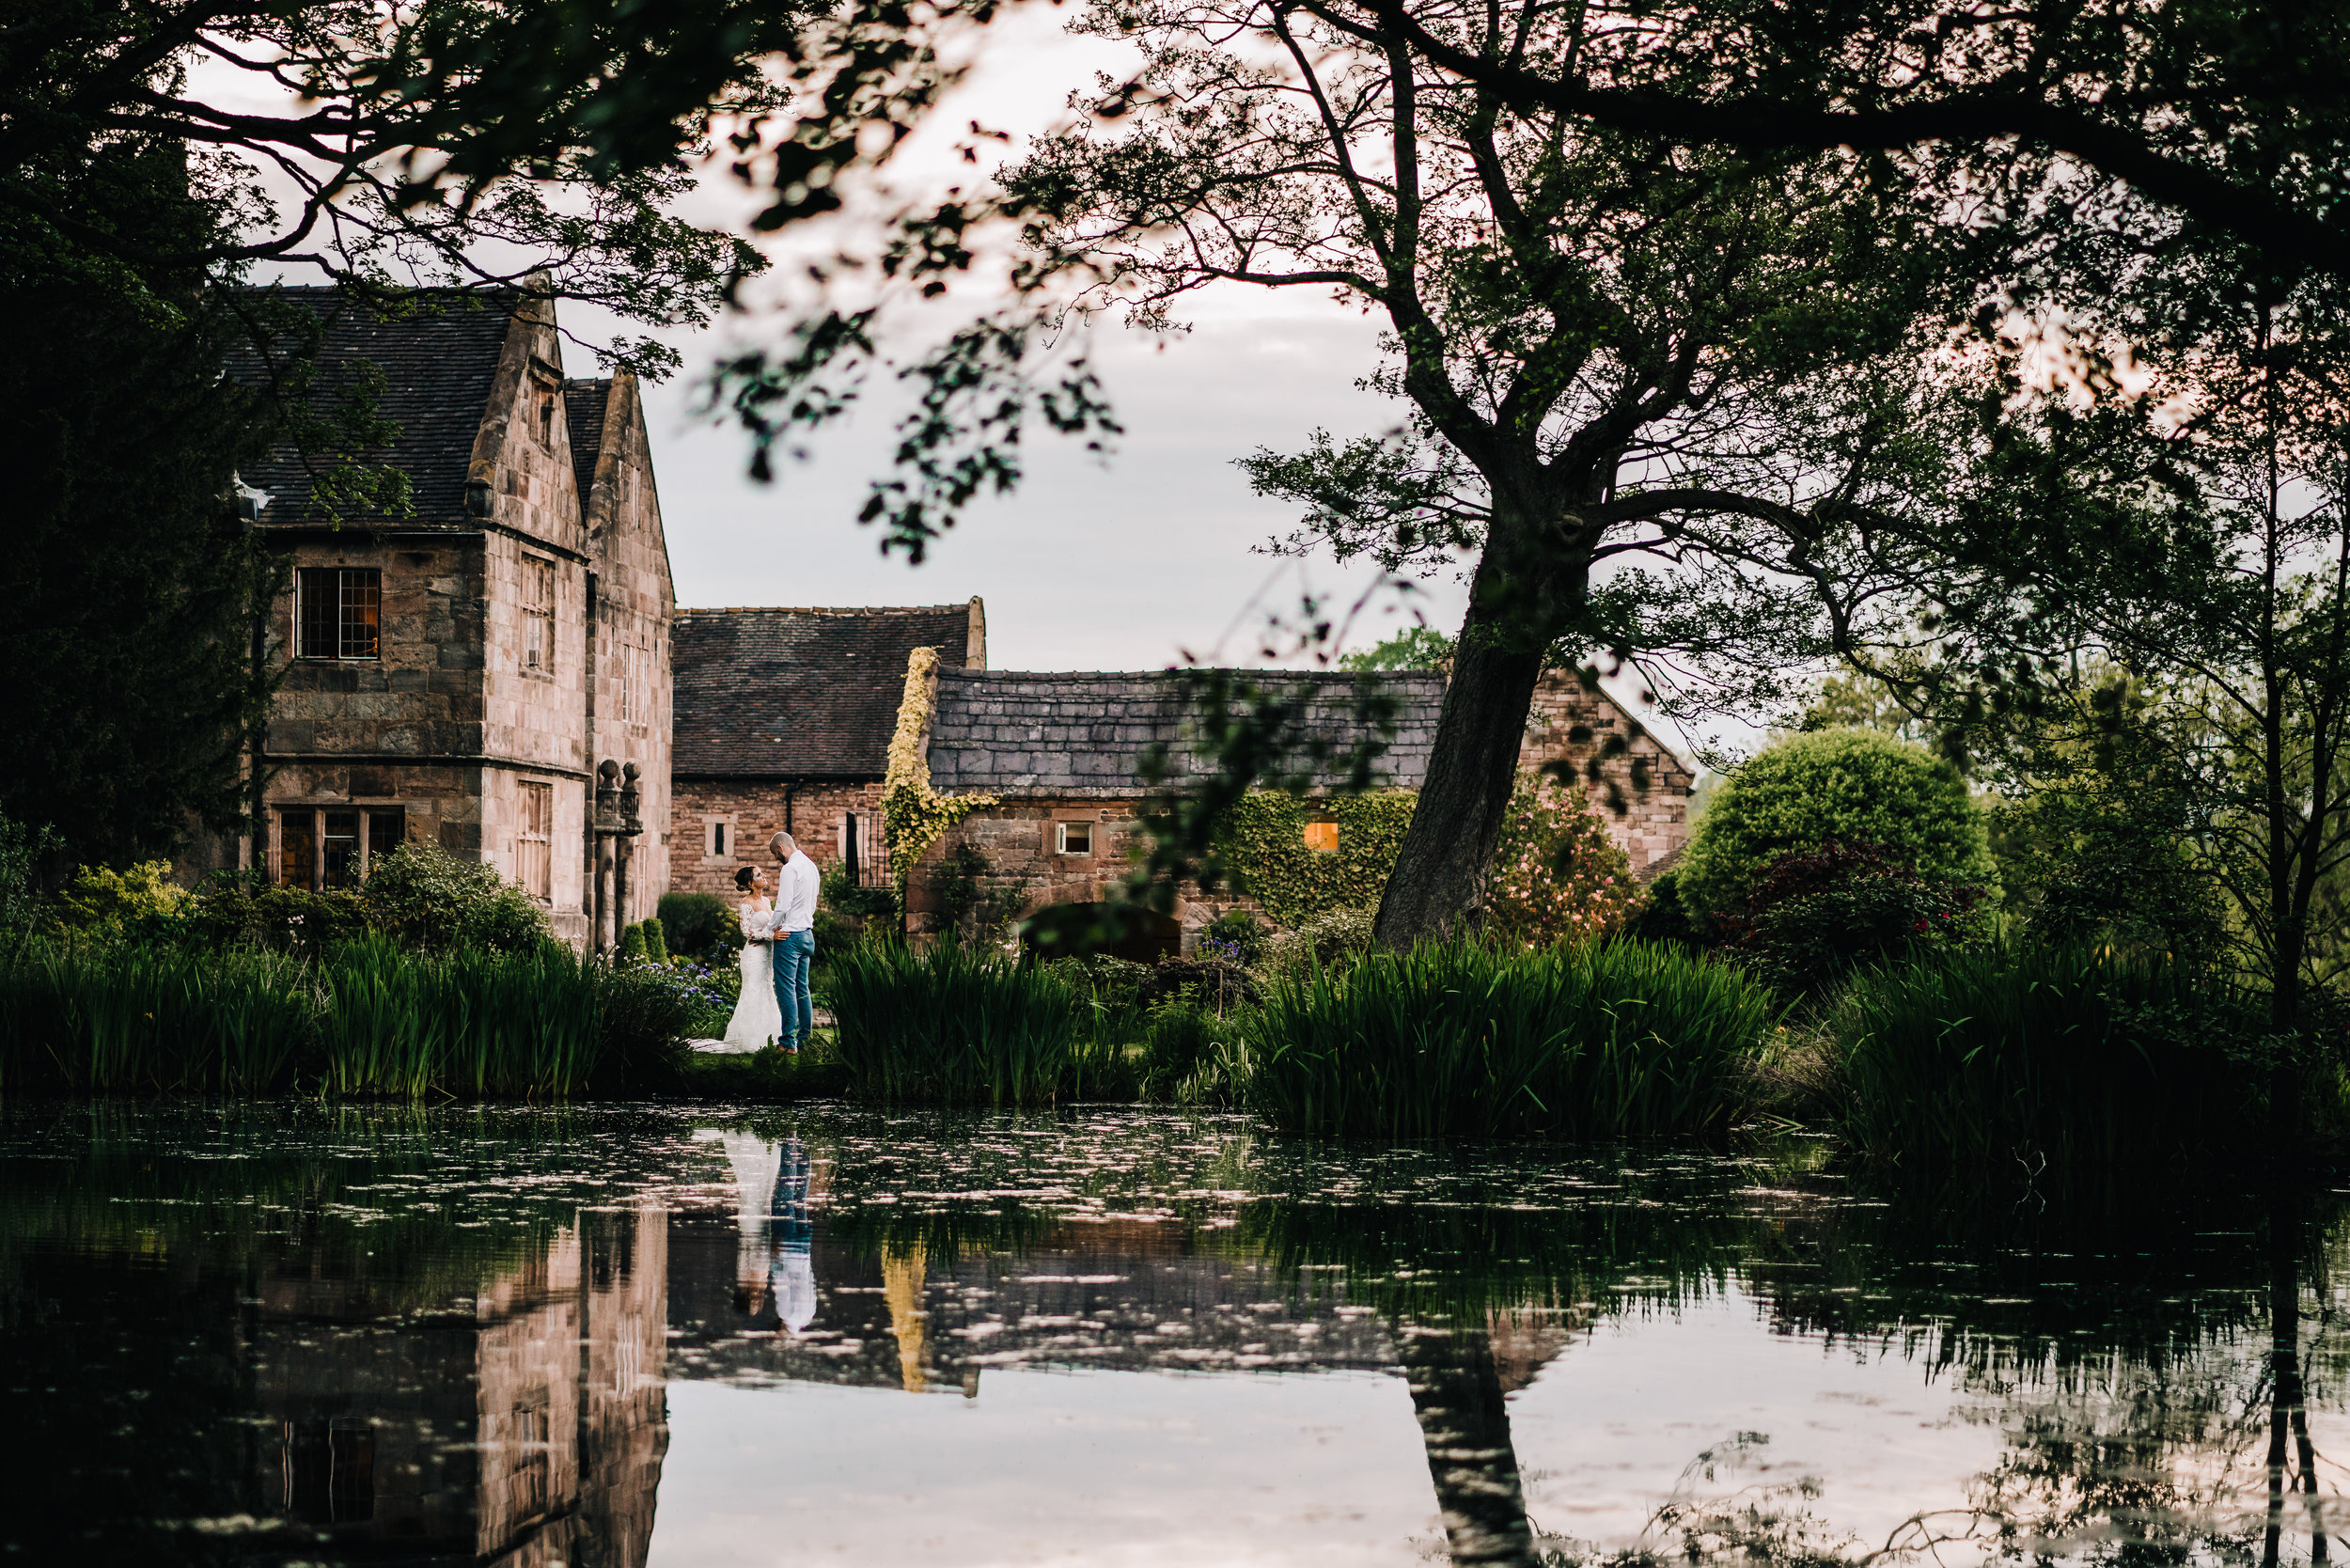 BEST PICTURE AT THE ASHES BARNS WEDDING VENUE STAFFORDSHIRE